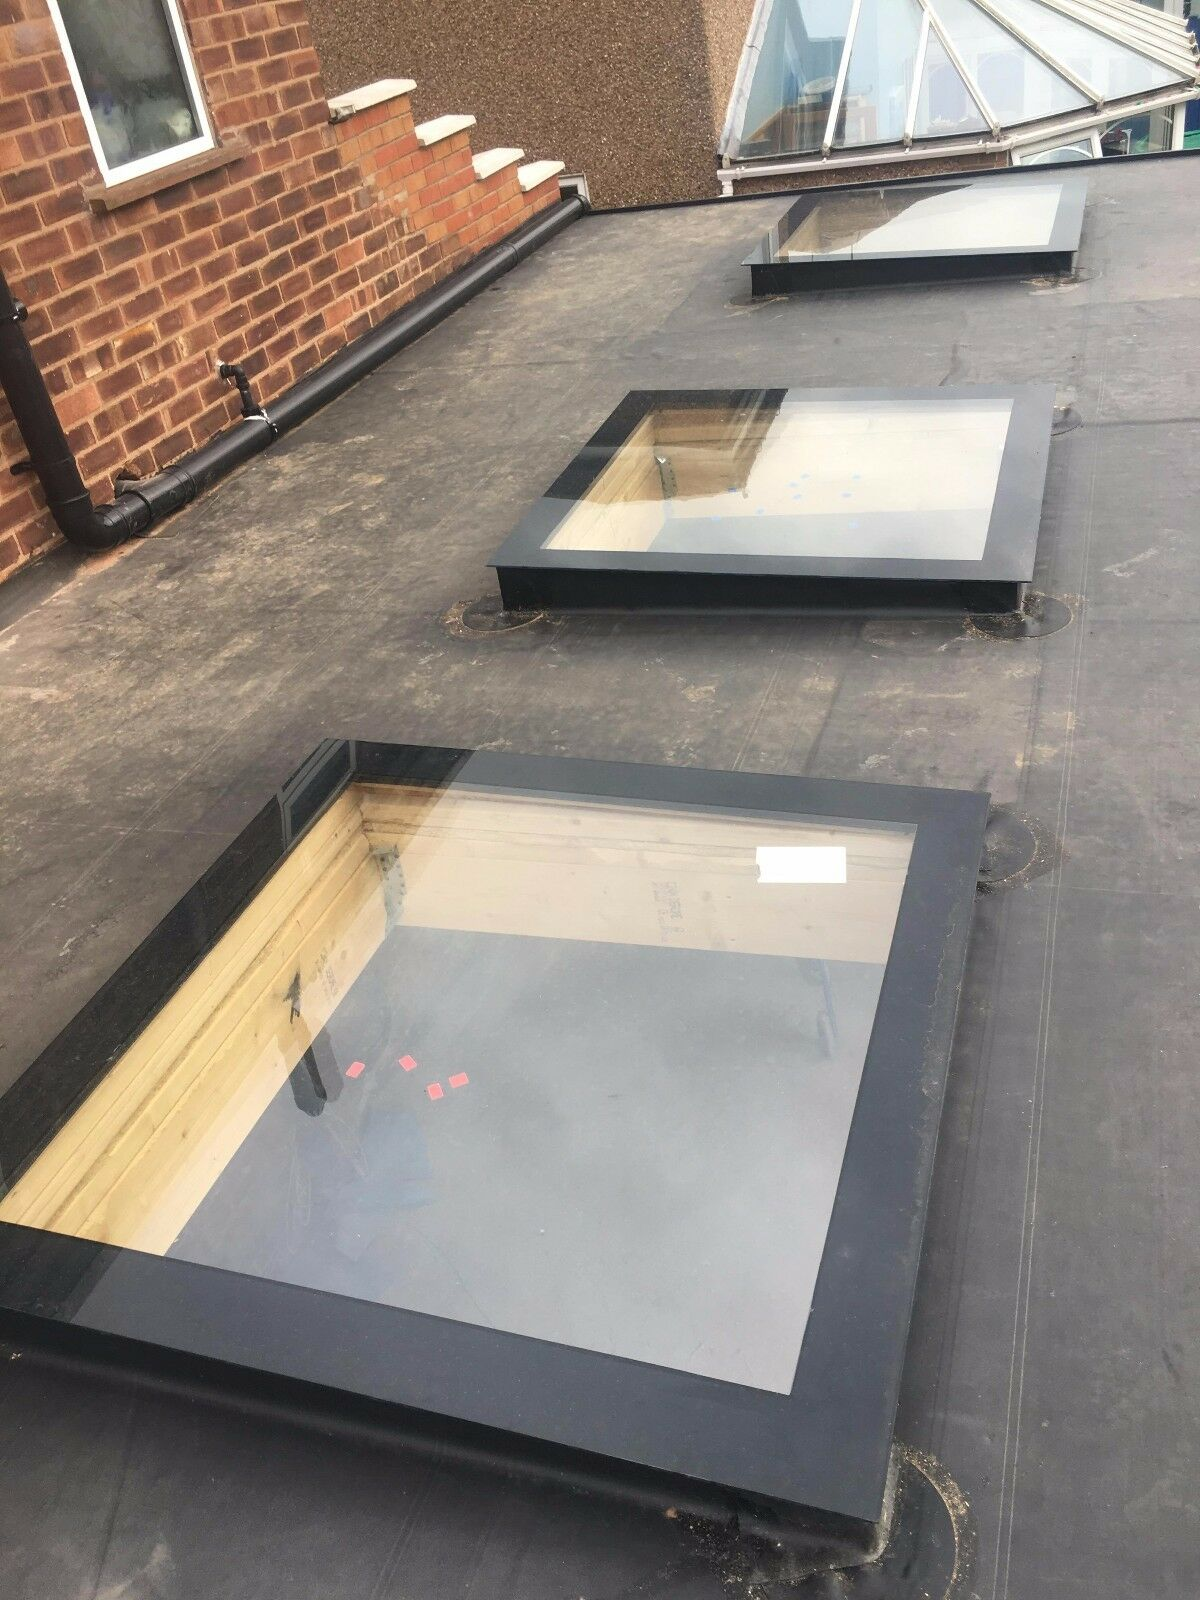 Rooflight Roof Glass Flat Roof Skylight D B Glazed Tgs